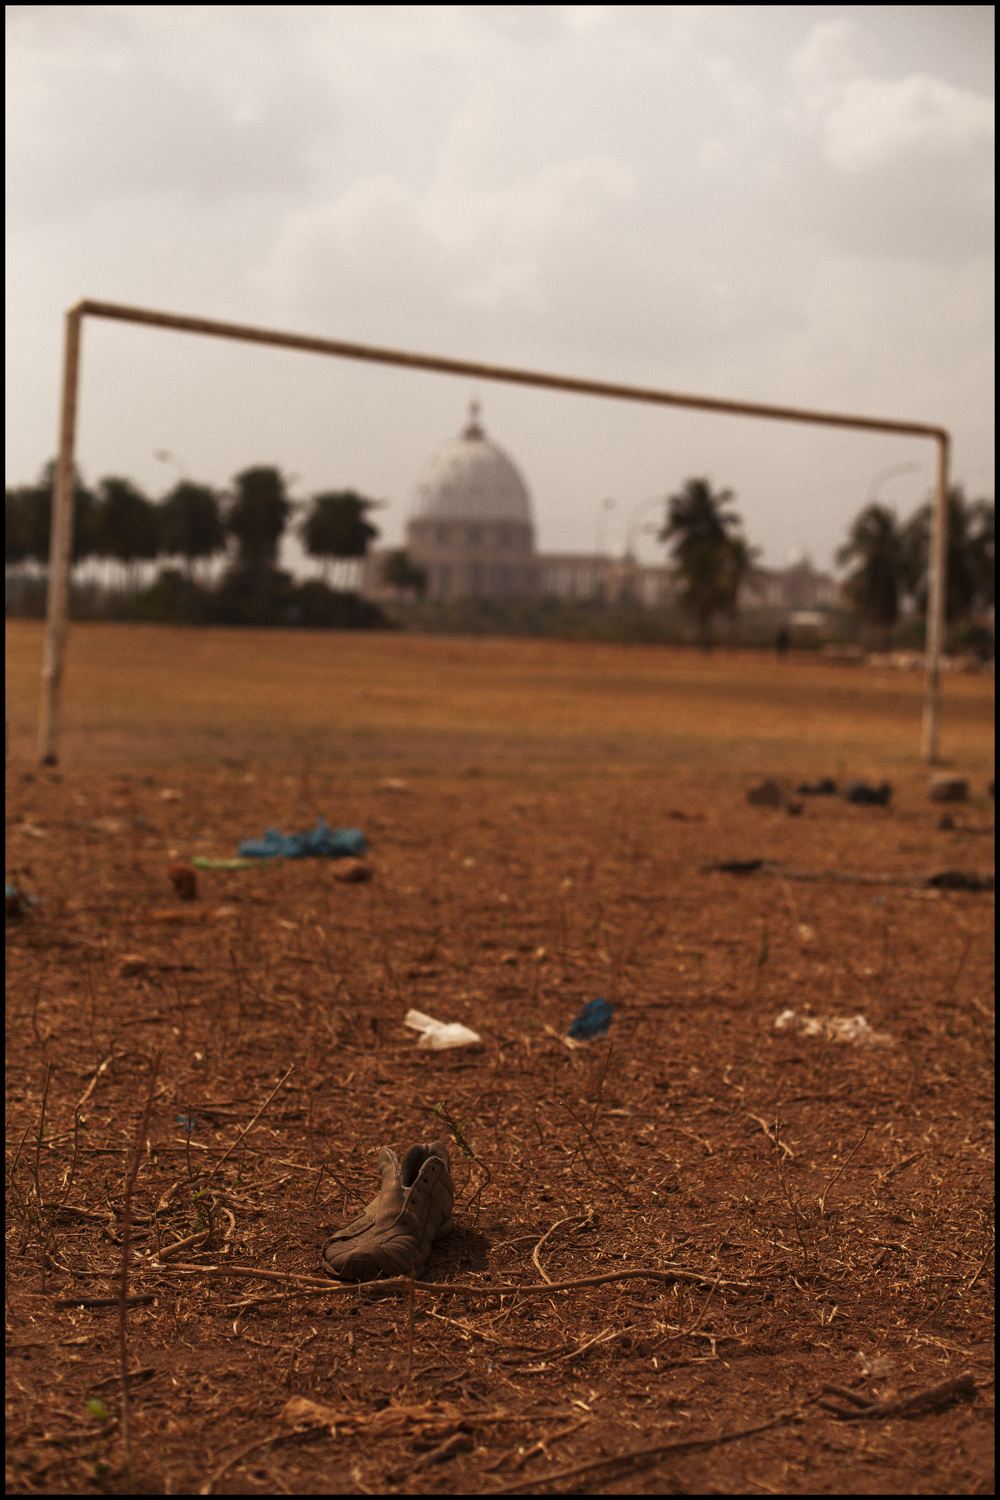 an abandoned soccer shoe at a field (Yamassoukro, Ivory Coast).jpg